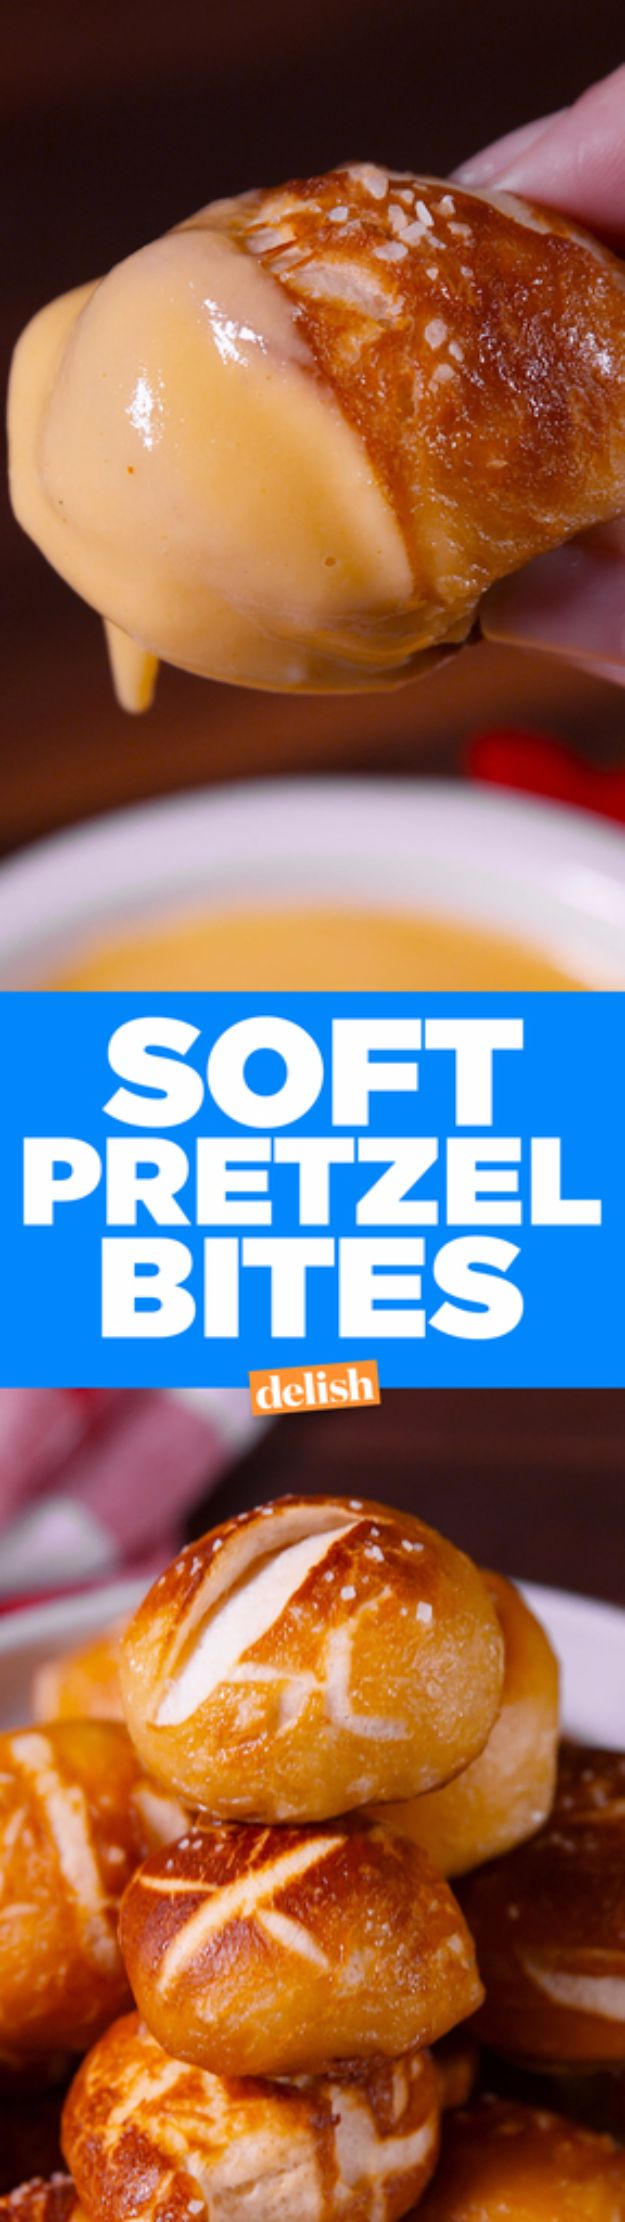 Best Canned Biscuit Recipes - Soft Pretzel Bites - Cool DIY Recipe Ideas You Can Make With A Can of Biscuits - Easy Breakfast, Lunch, Dinner and Desserts You Can Make From Pillsbury Pull Apart Biscuits - Garlic, Sour Cream, Ground Beef, Sweet and Savory, Ideas with Cheese - Delicious Meals on A Budget With Step by Step Tutorials